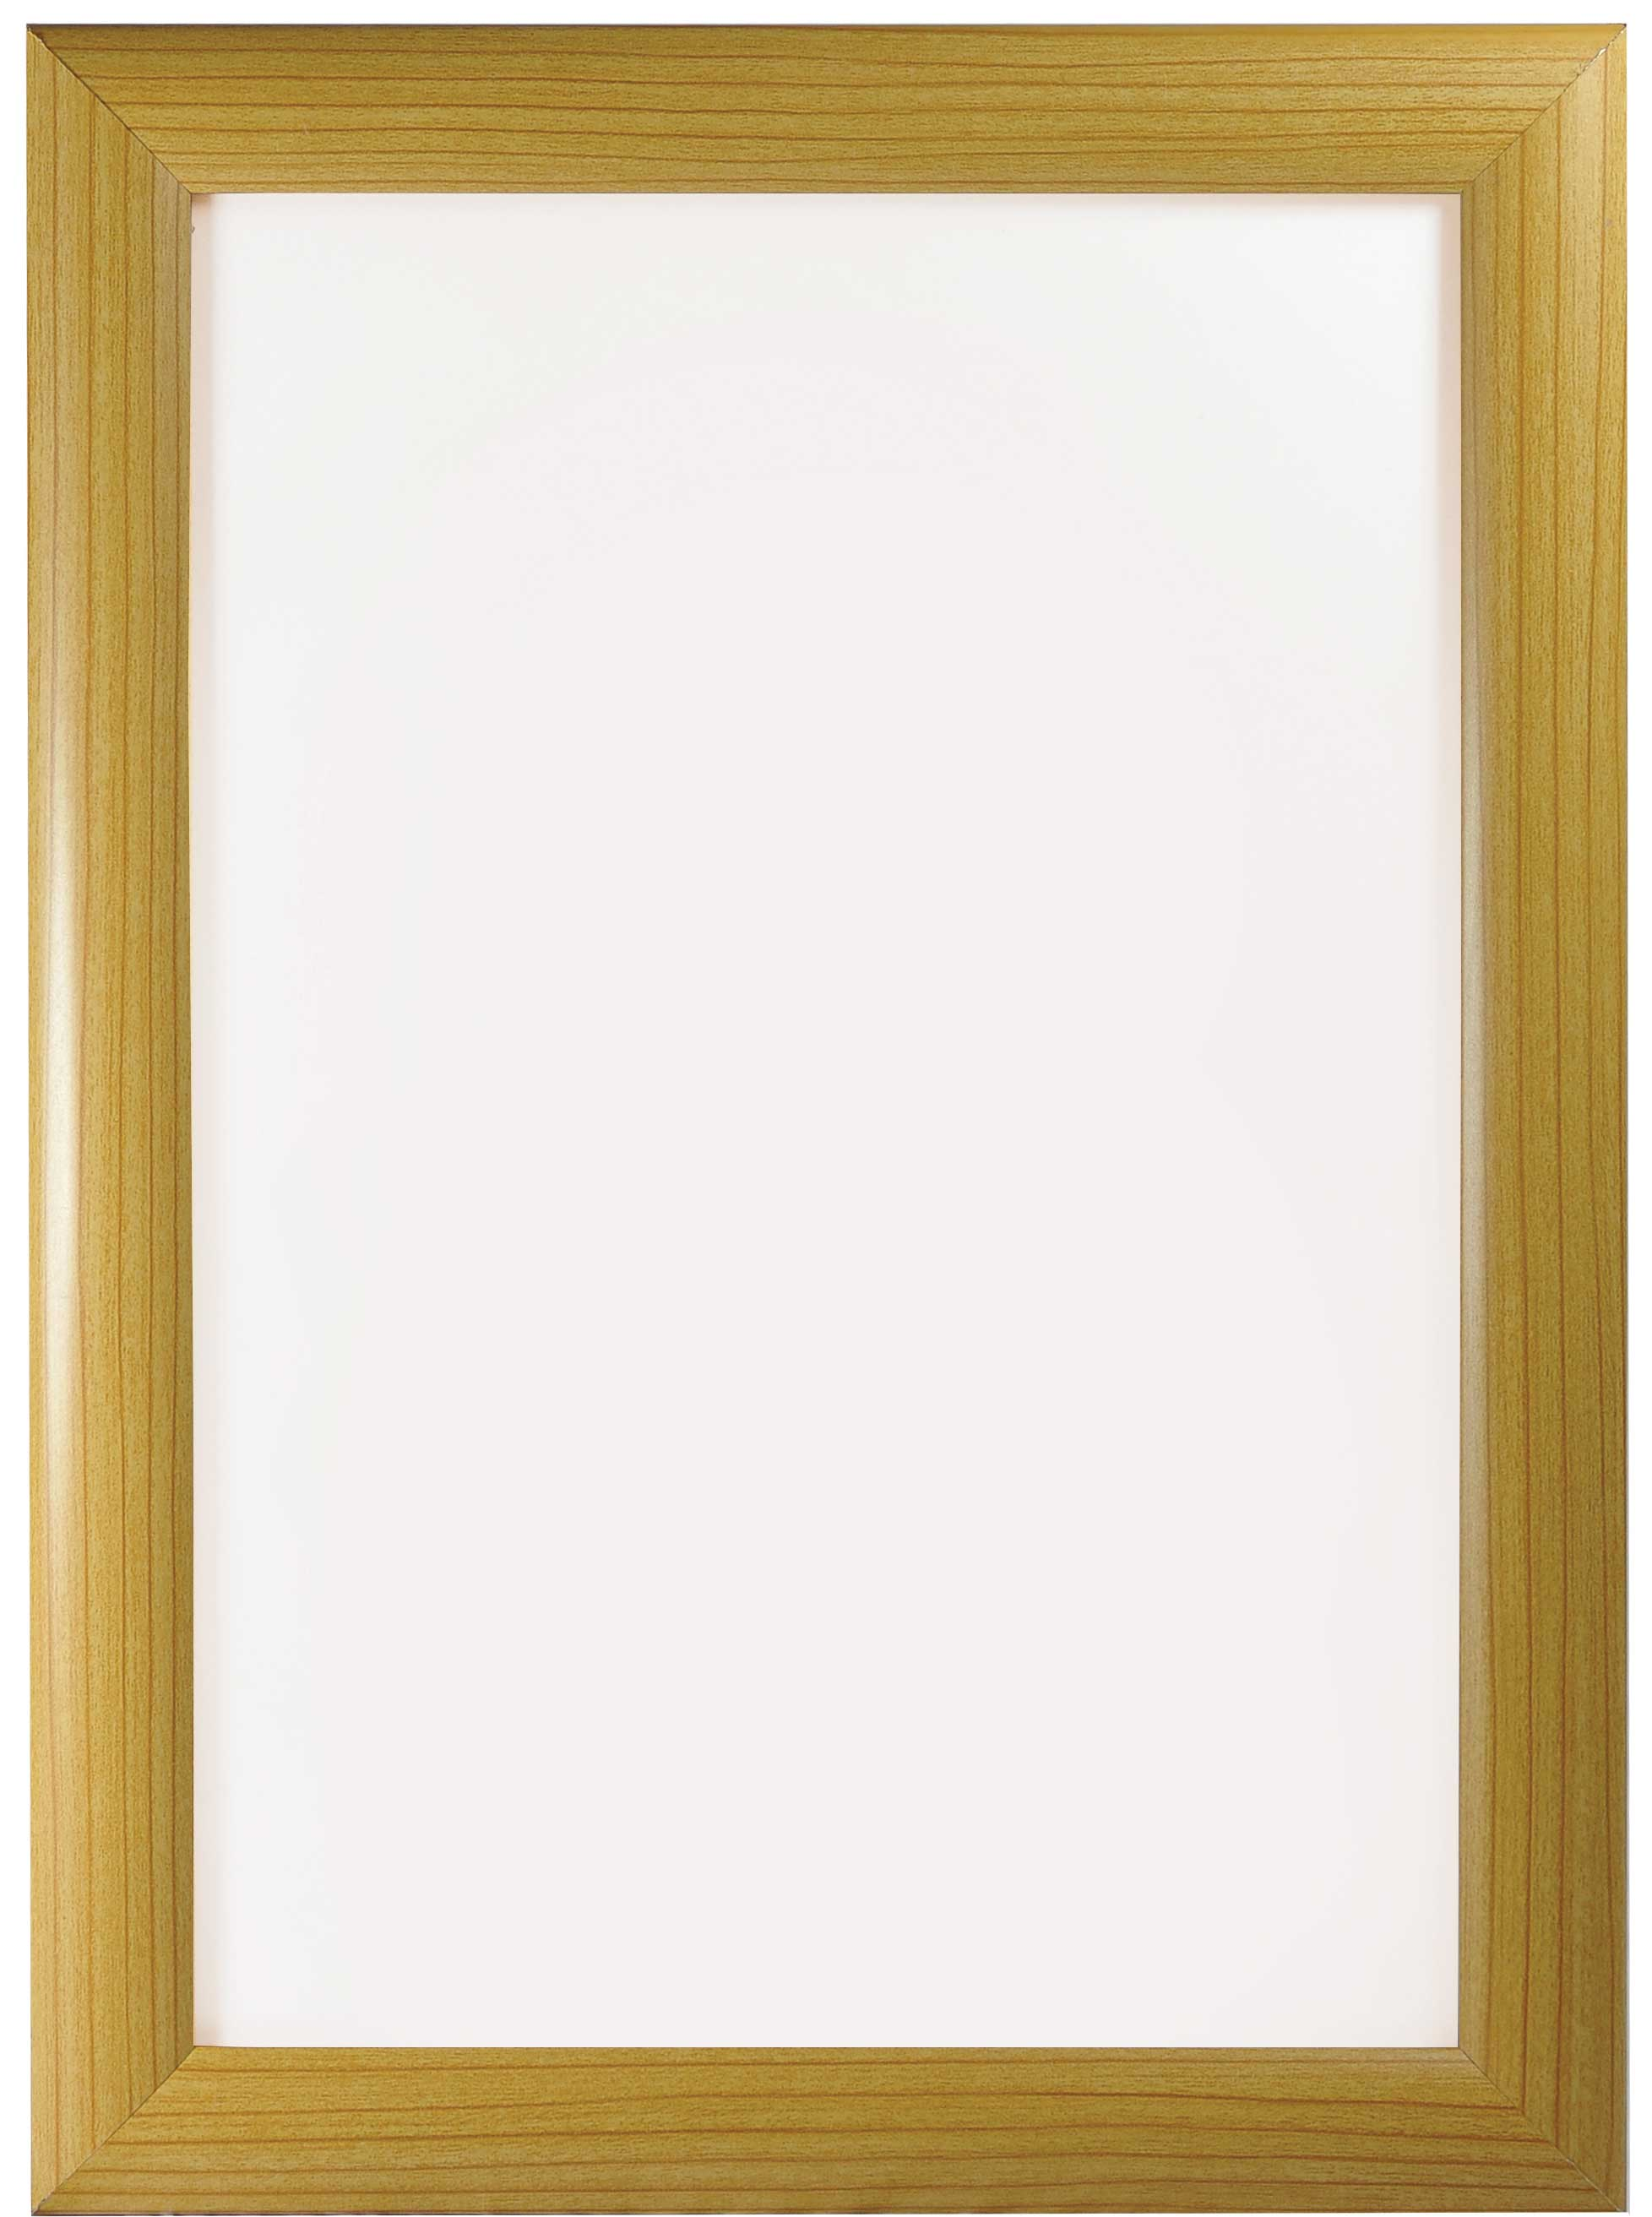 762 X 1016 Snap Frames 30 X 40 Inches Pine Mitred Clip Frames 25 Pk5